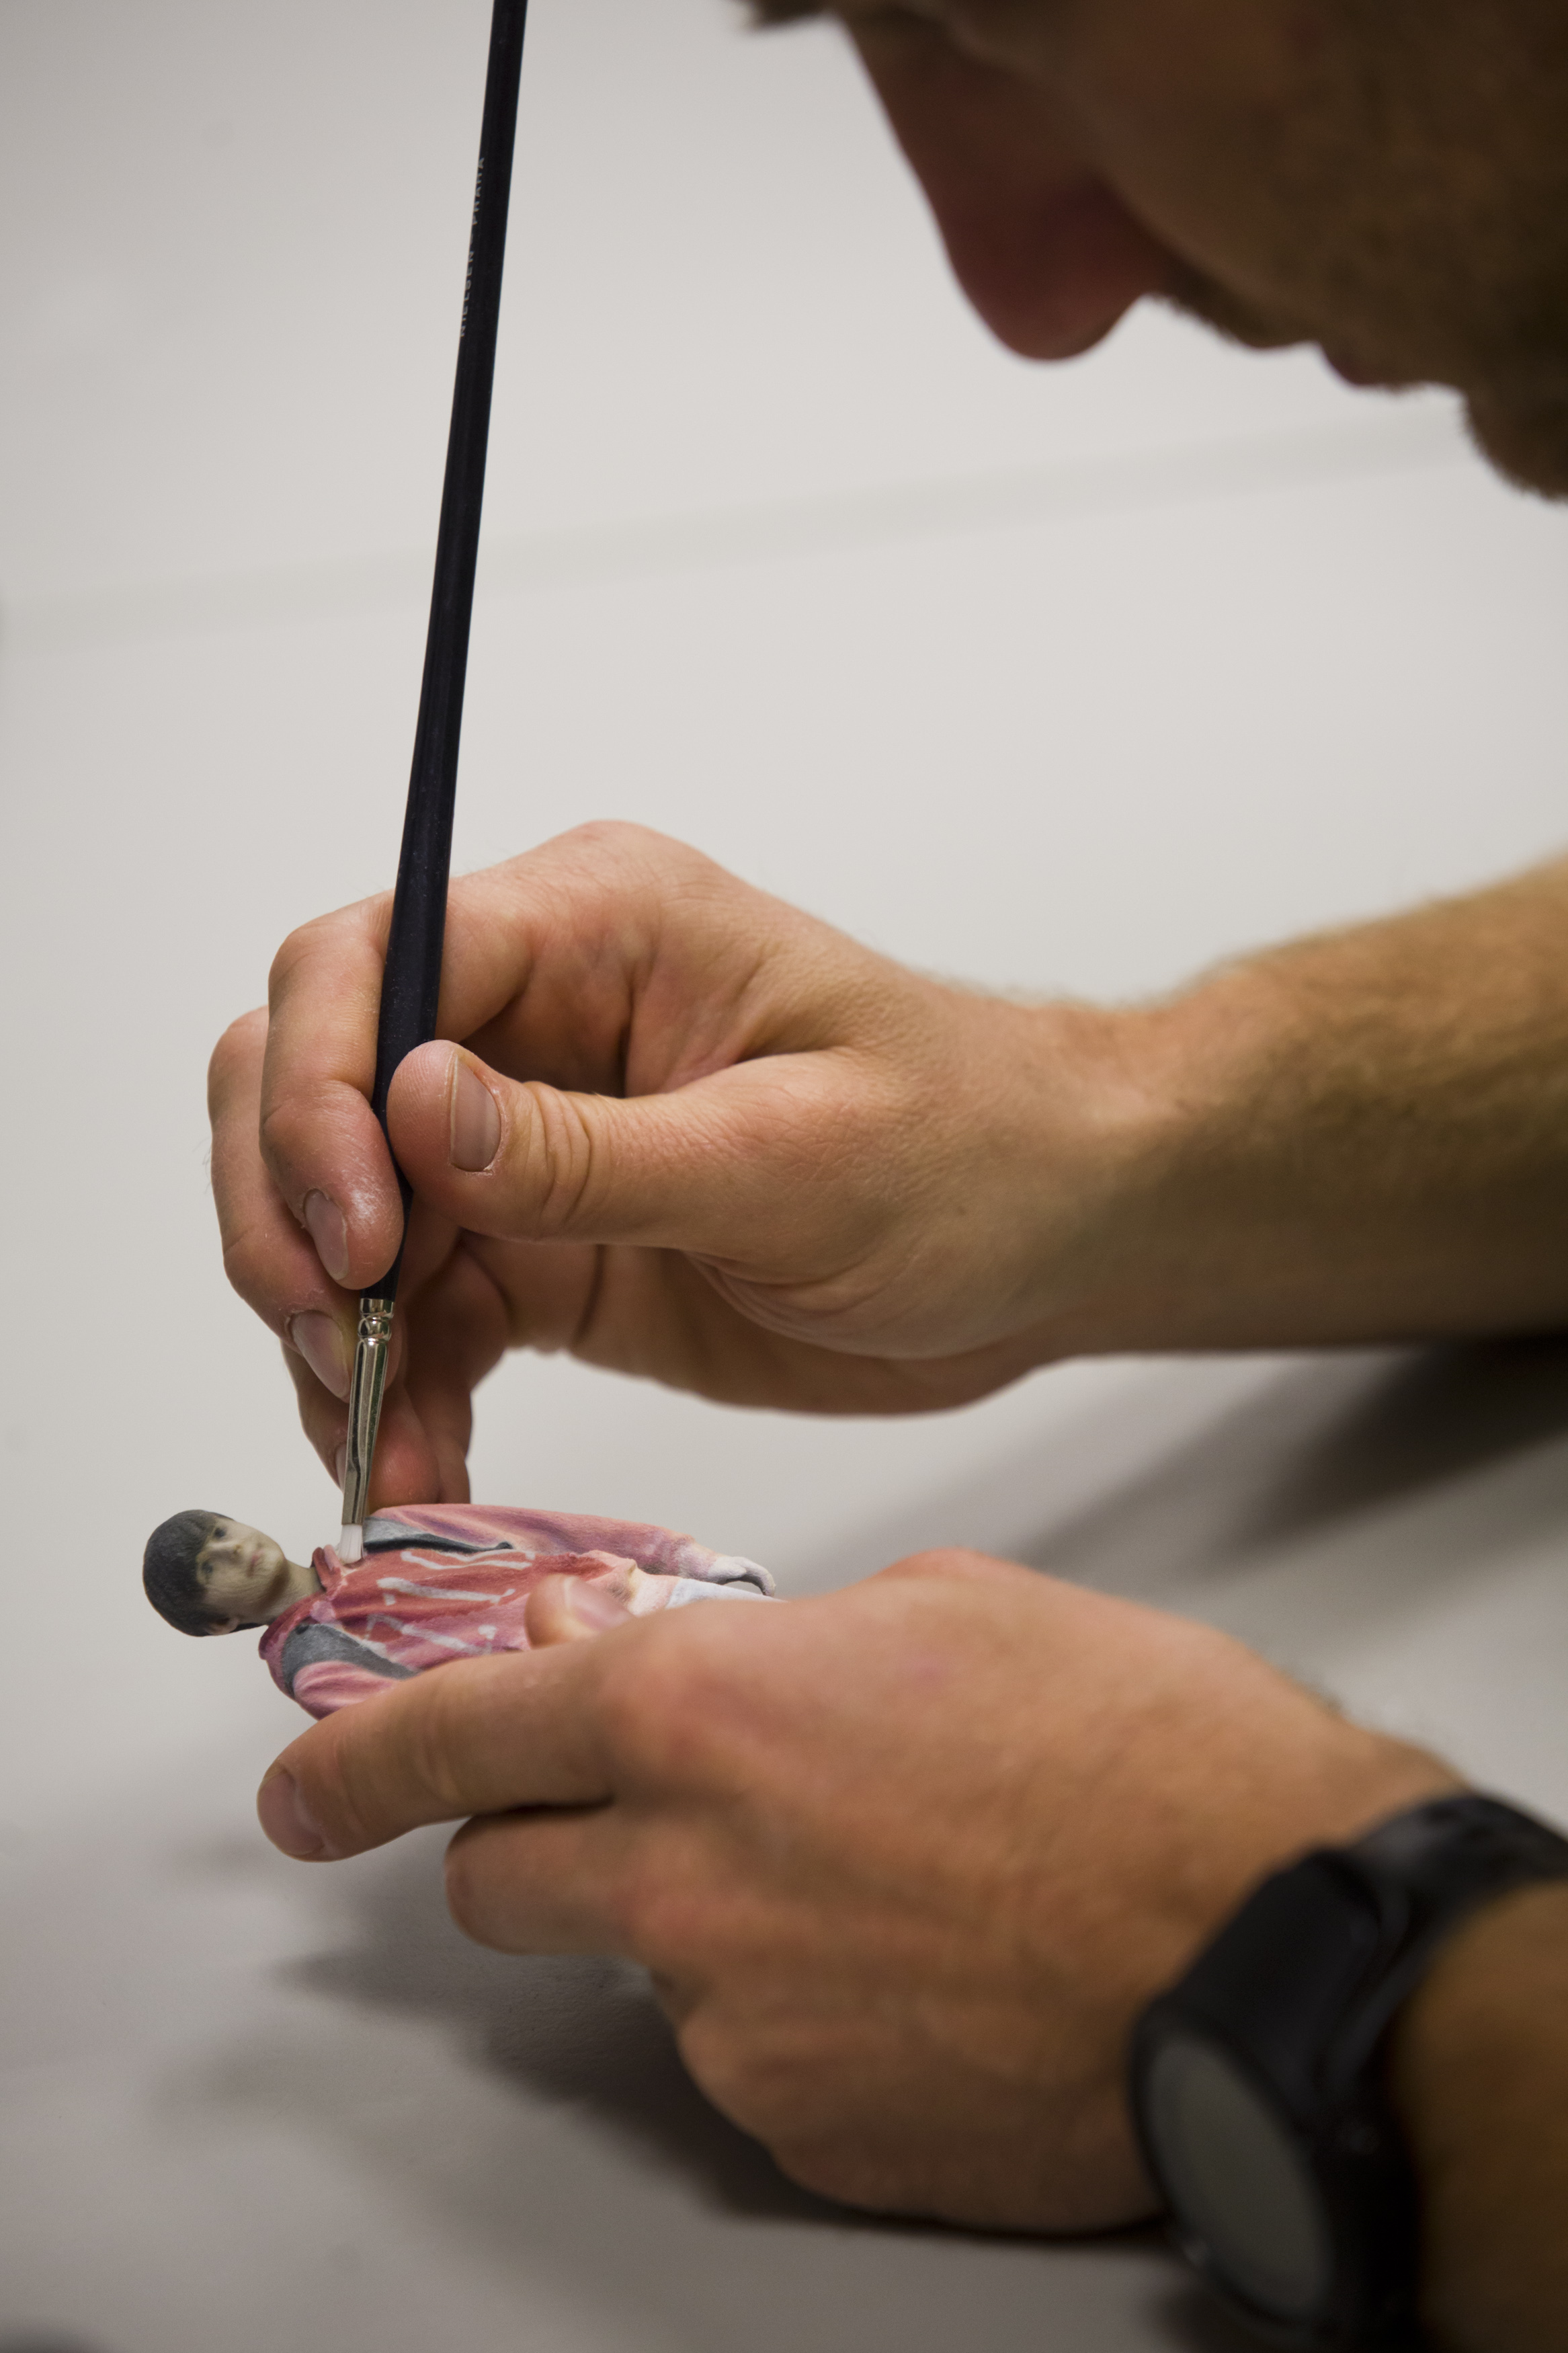 Martin Benes from 3D gang company demonstrates one of the stages of 3D scanning on August 26, 2014 in Prague, Czech Republic.